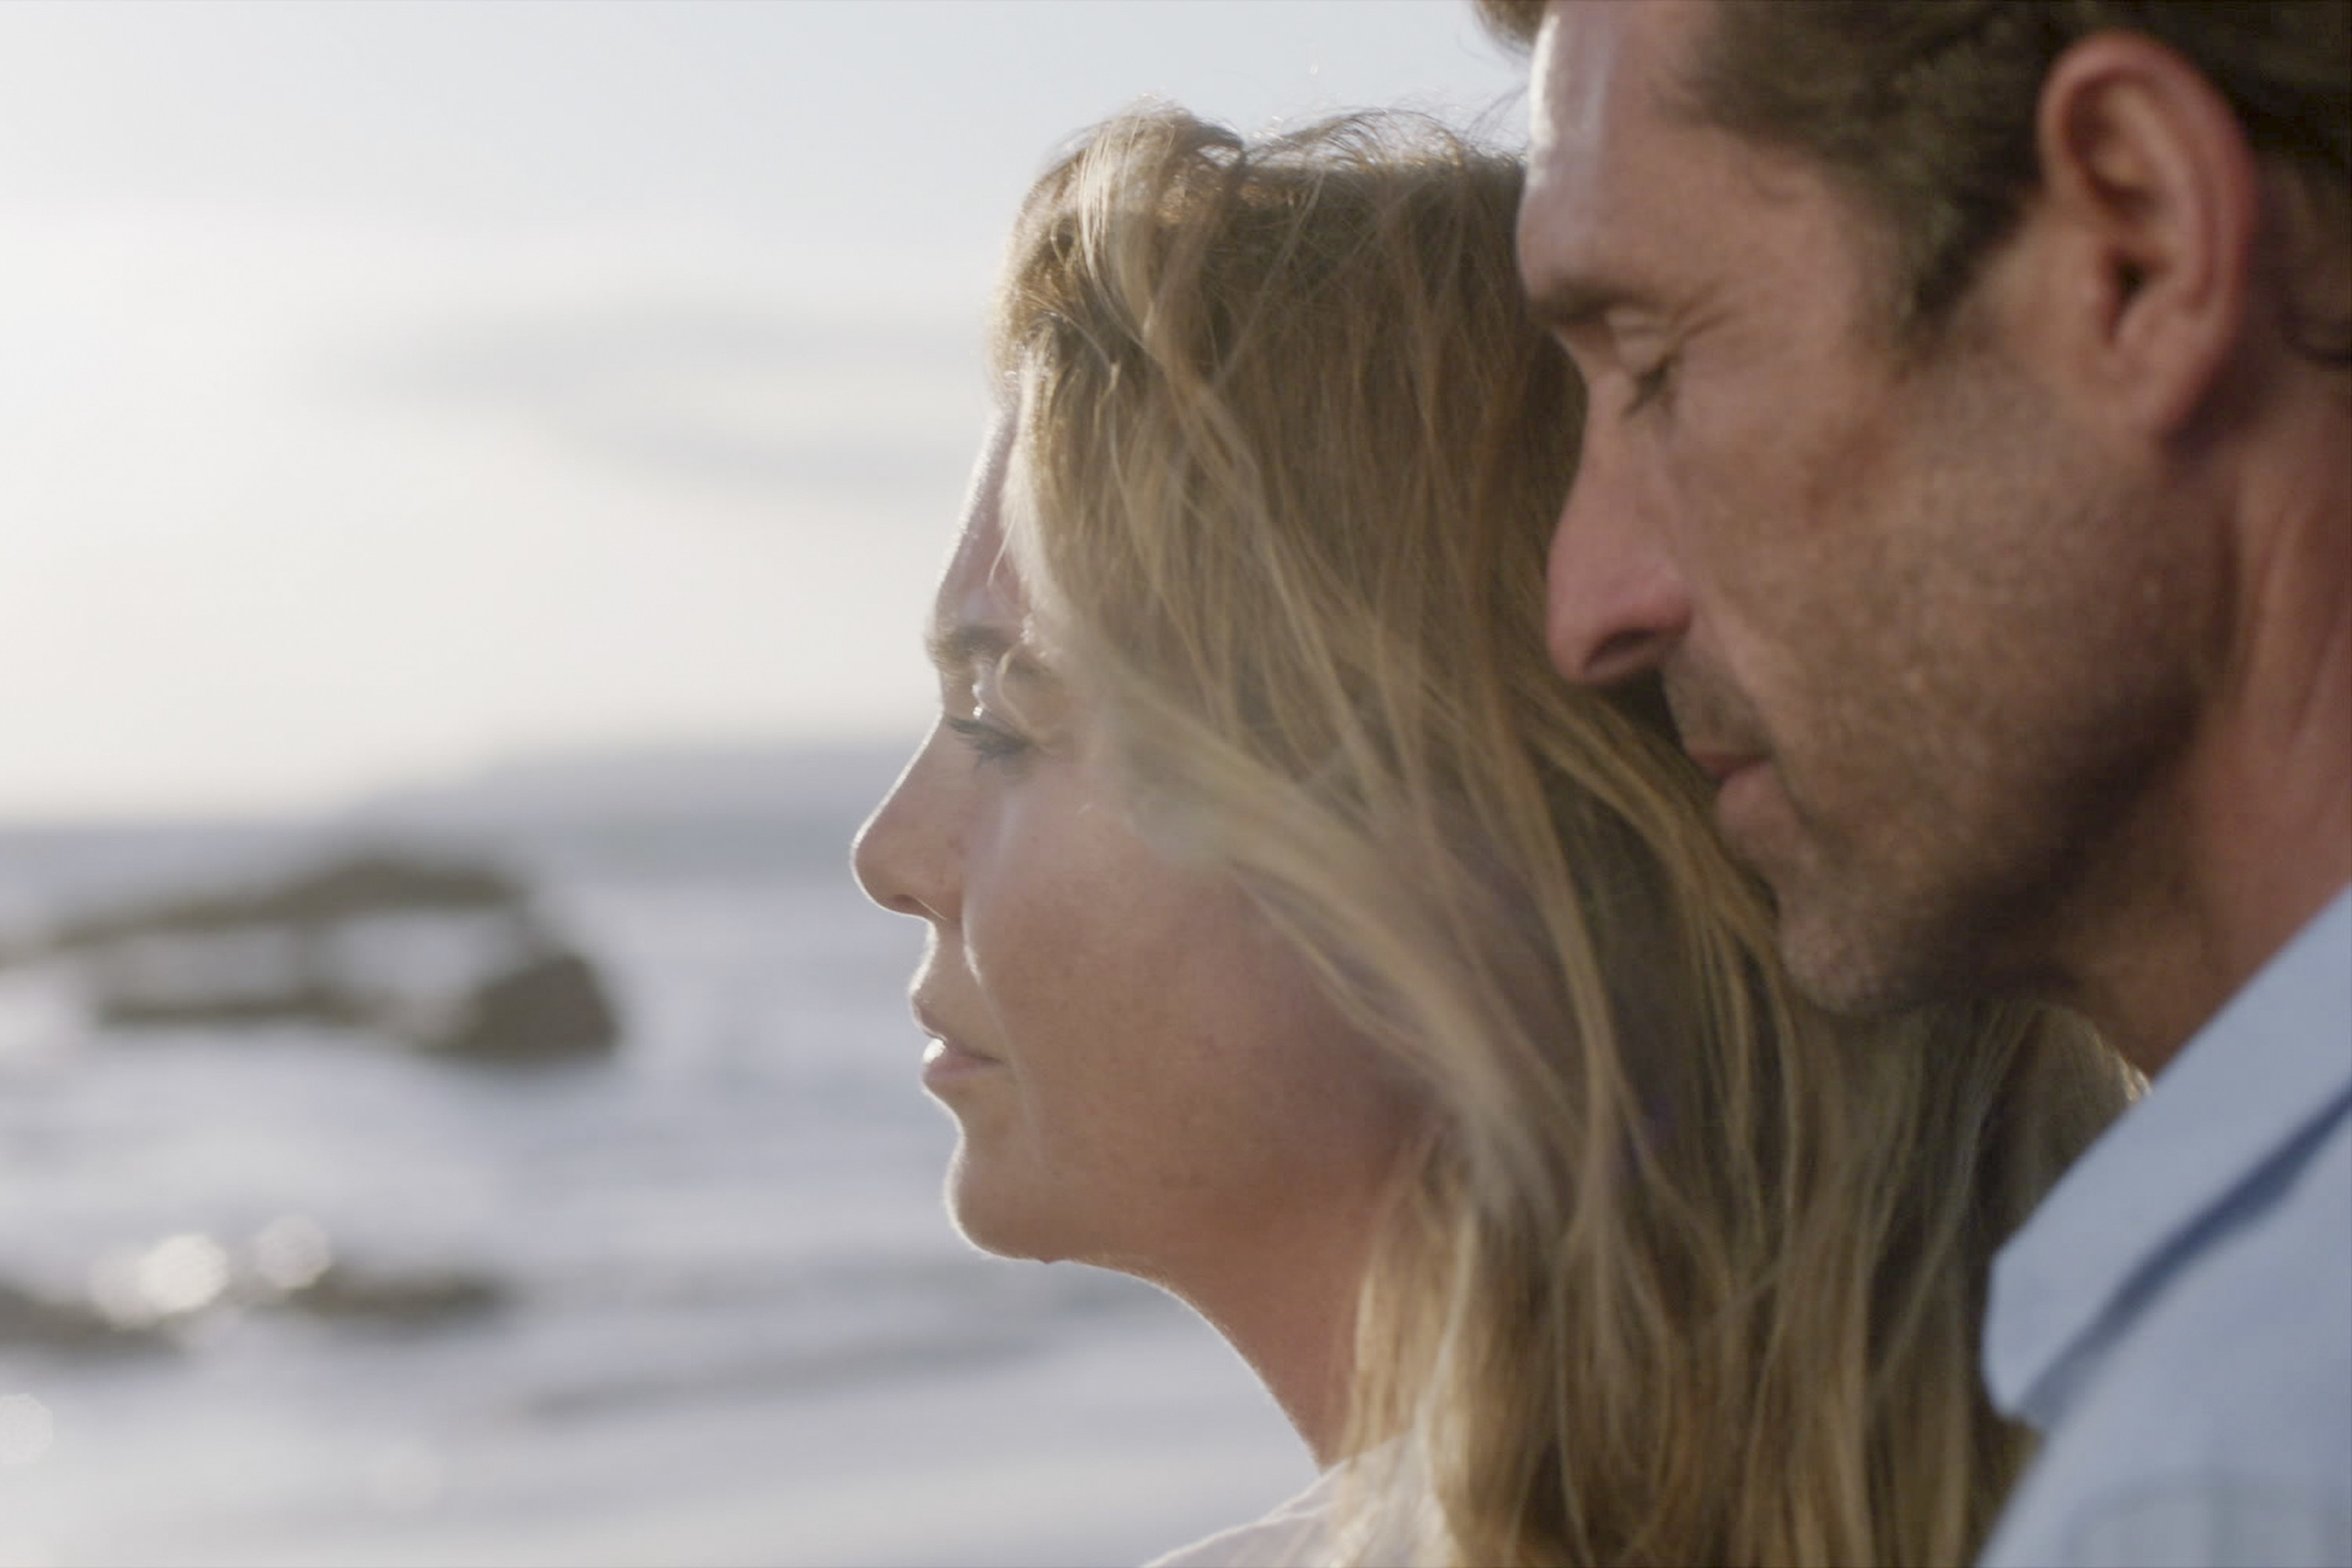 Dempsey and Pompeo look out onto the ocean in Grey's Anatomy